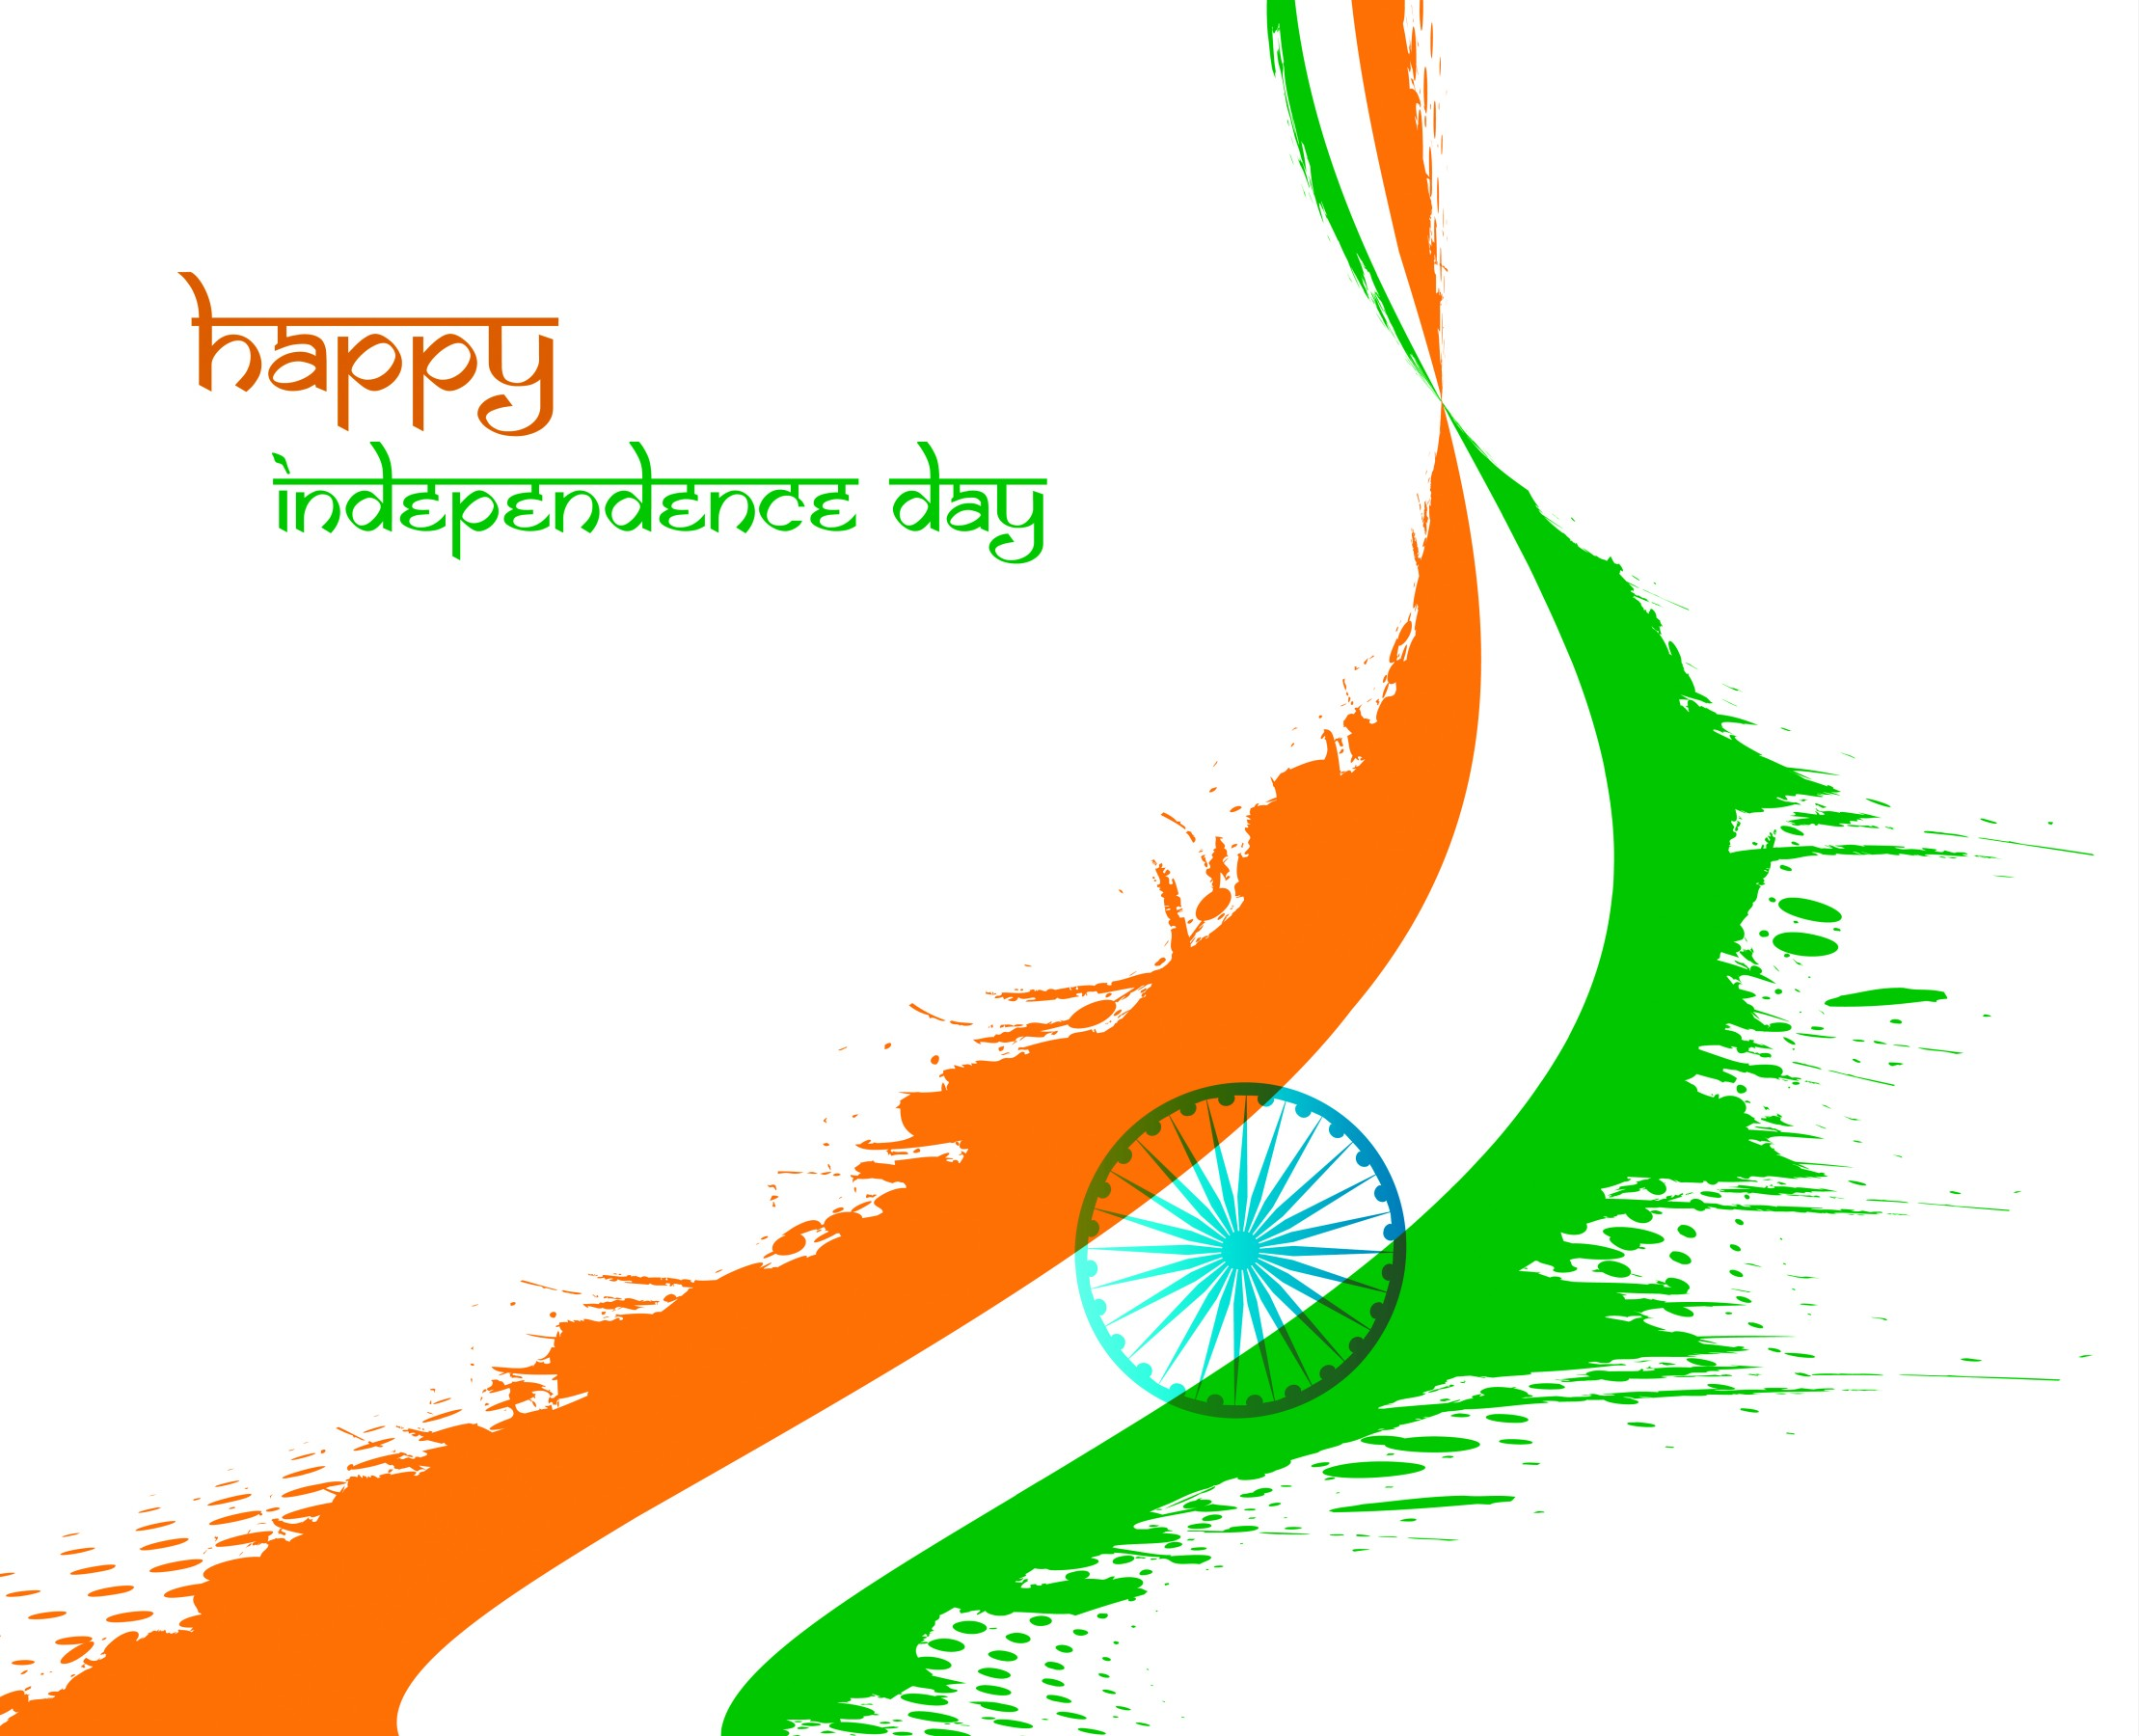 Independence day in india essay